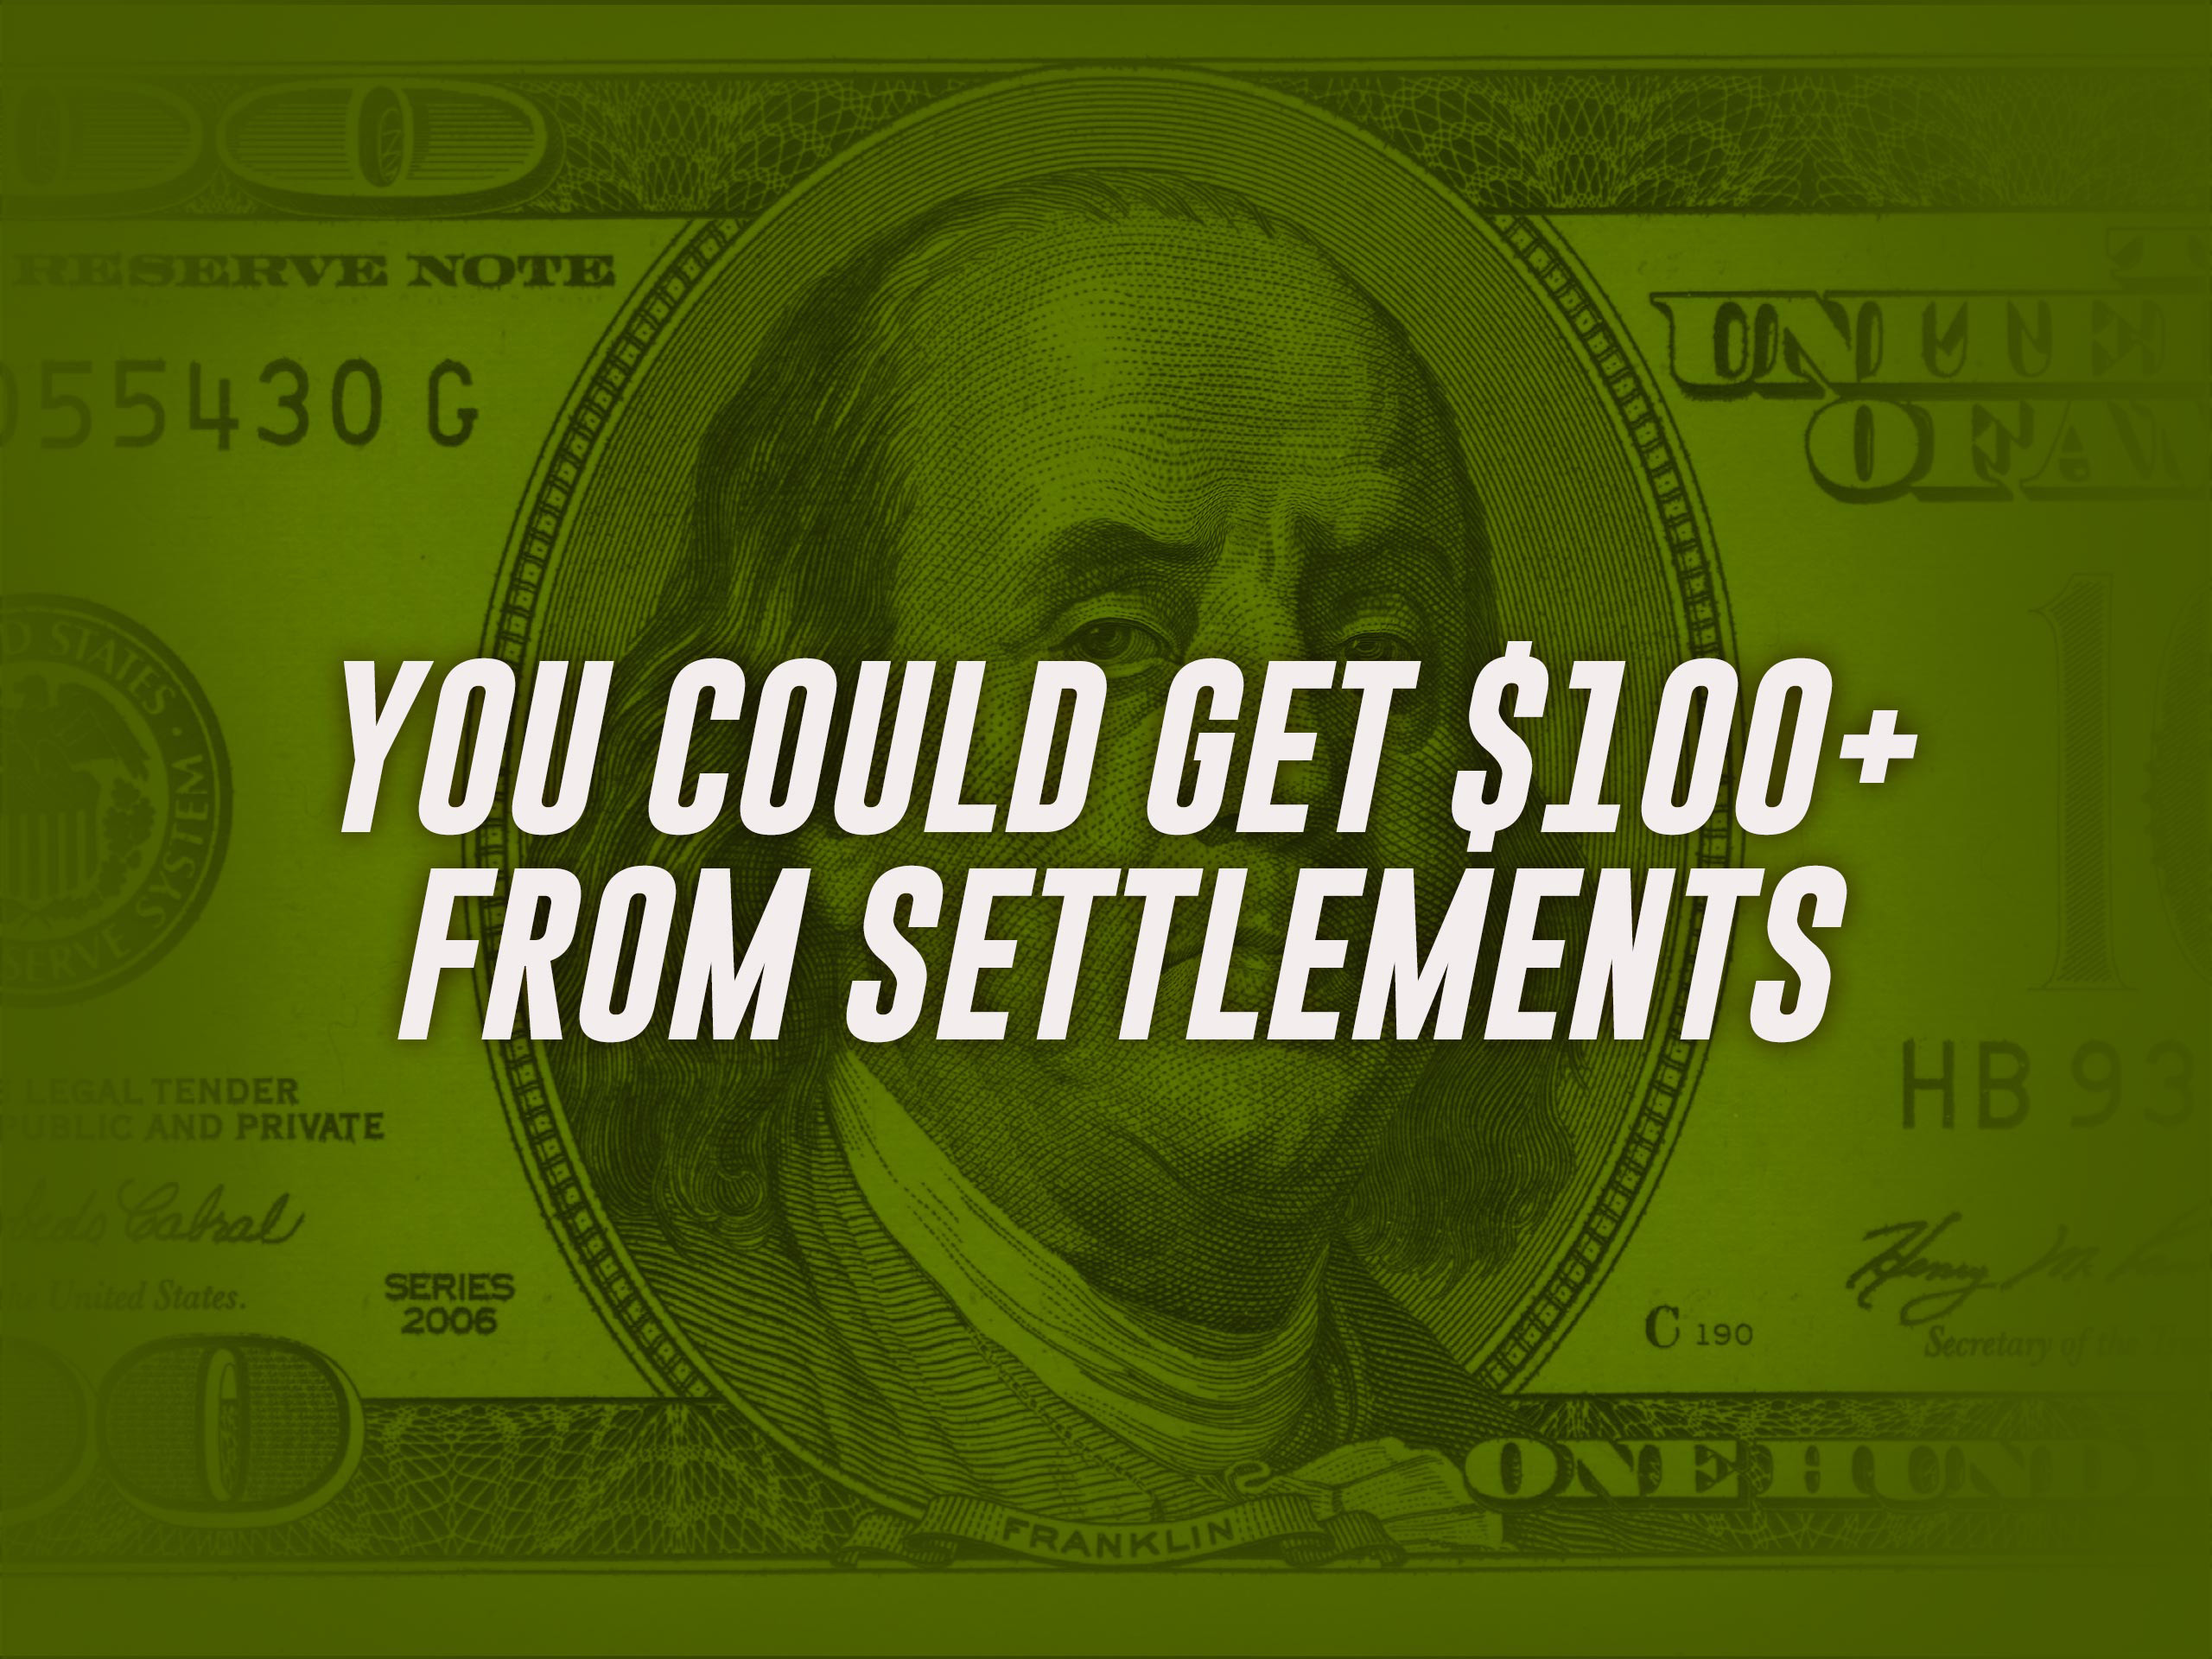 Owned or Leased Vehicles?   Or bought replacement parts? Consumers and businesses could get $100 or more from Settlements because they may have paid too much for the parts in their vehicles.